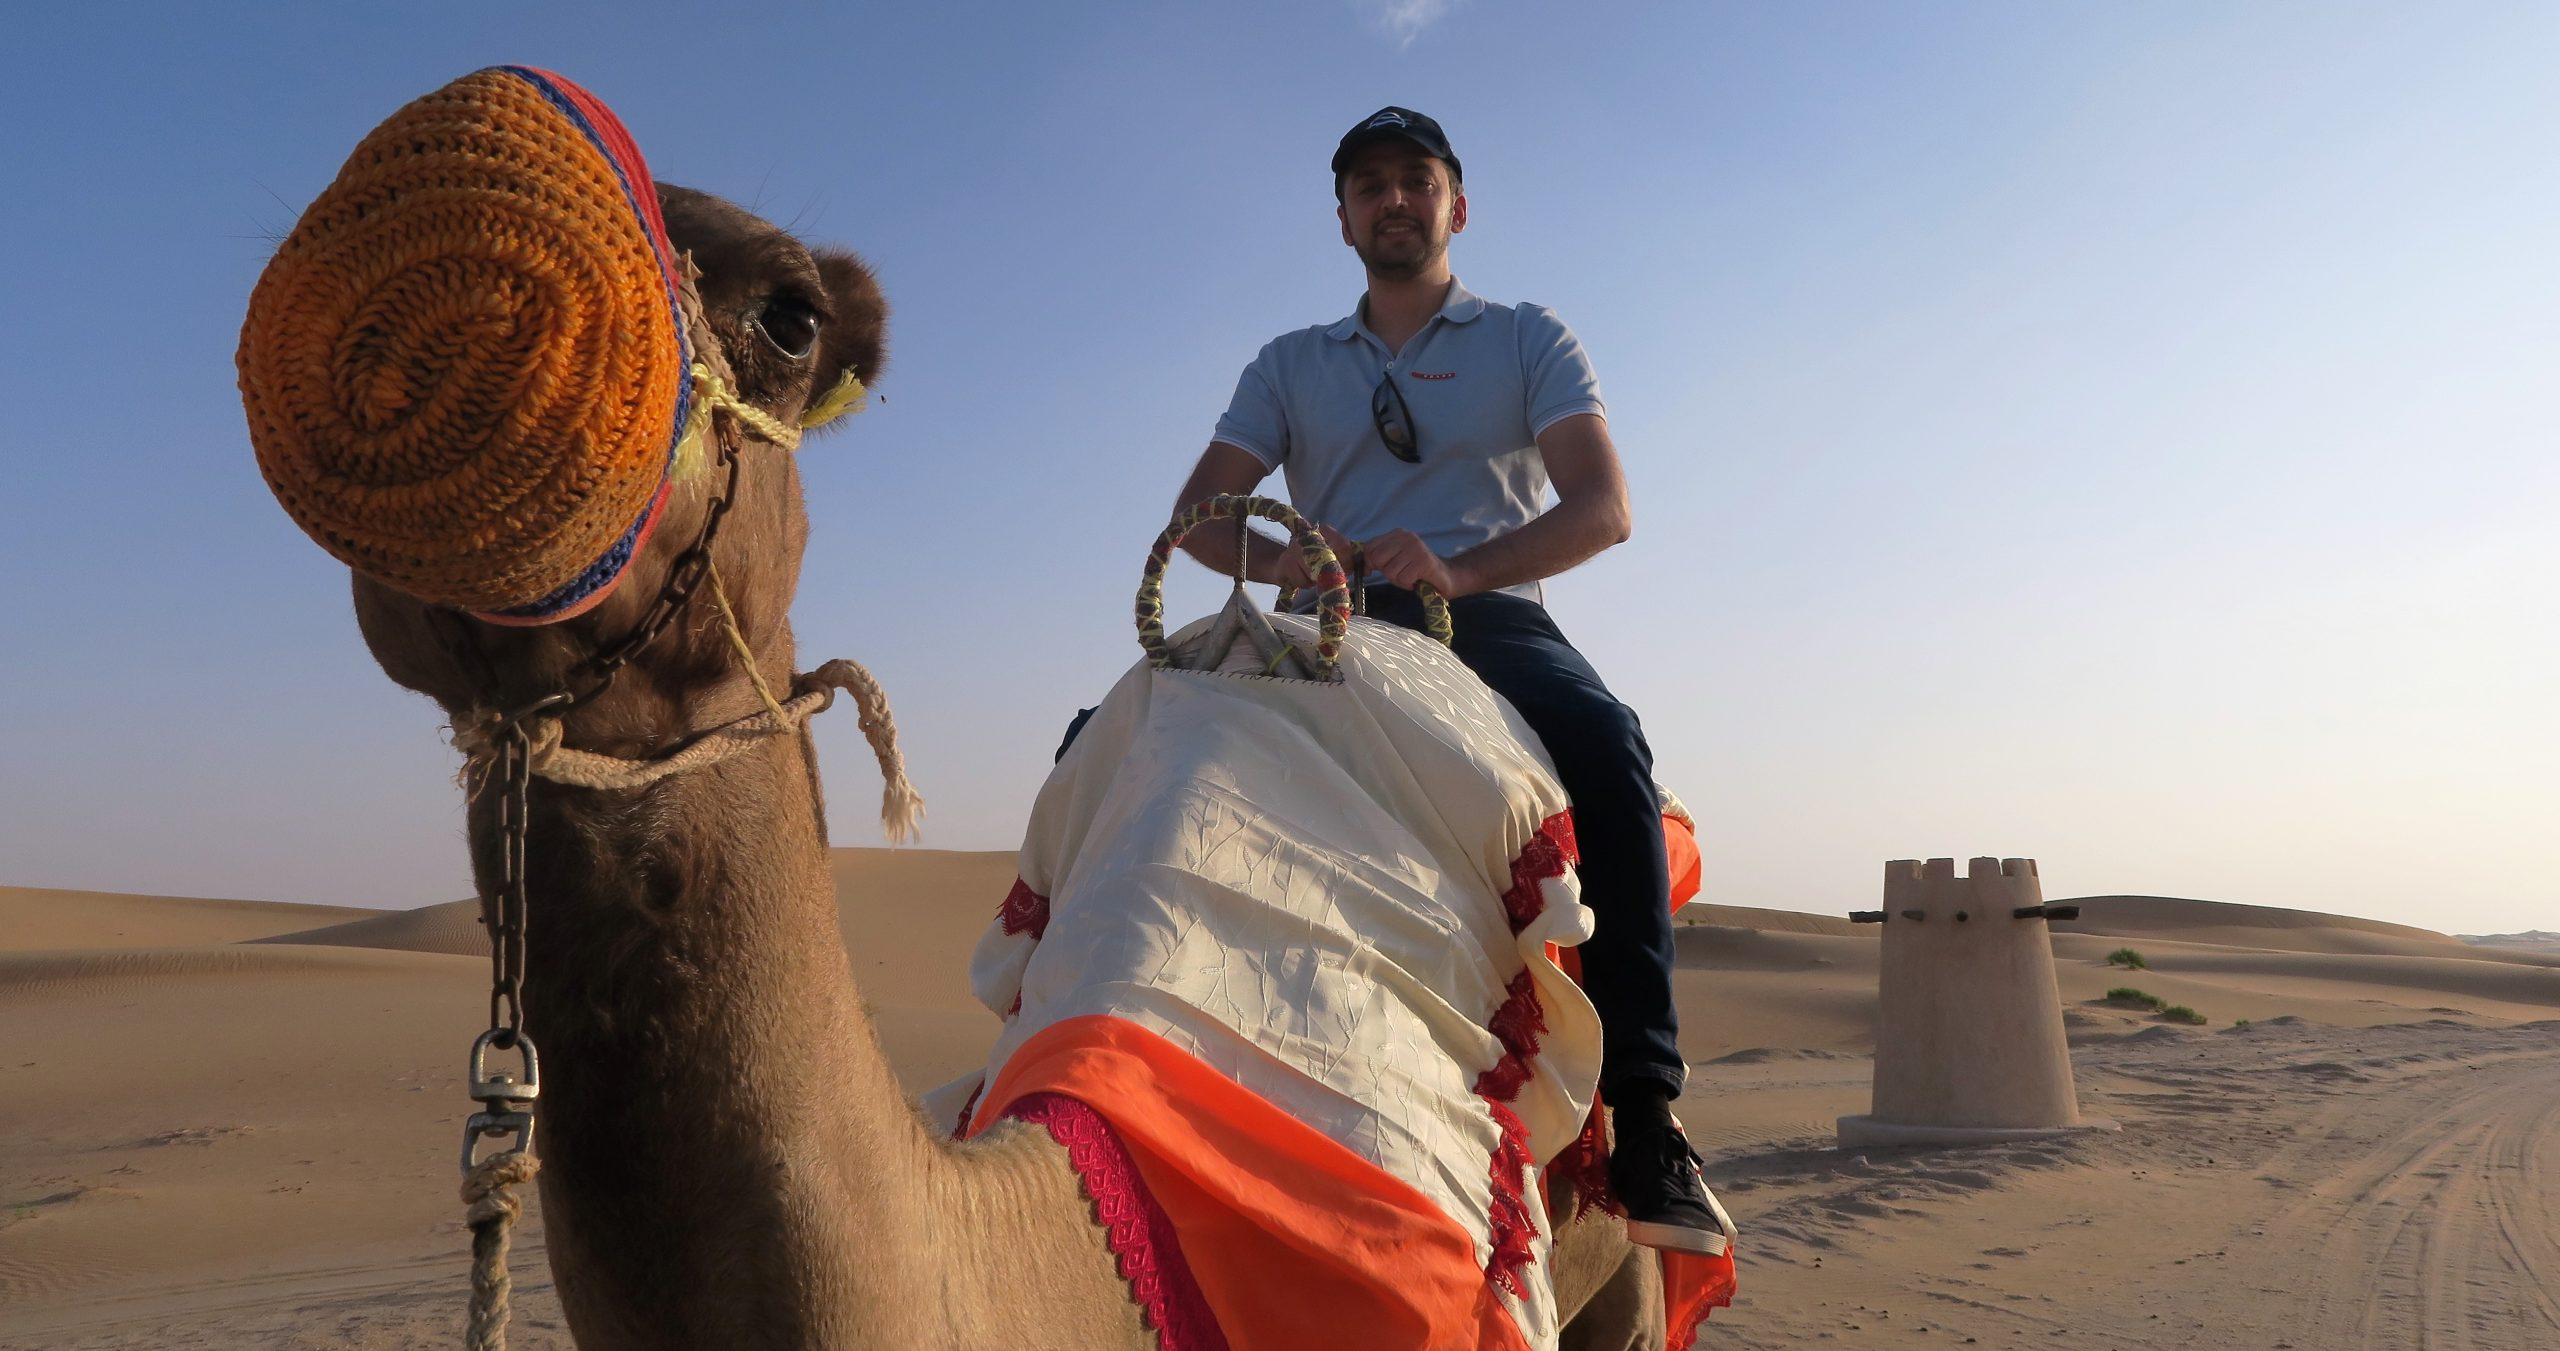 Arabian Nights Village – Desert Adventure in Abu Dhabi